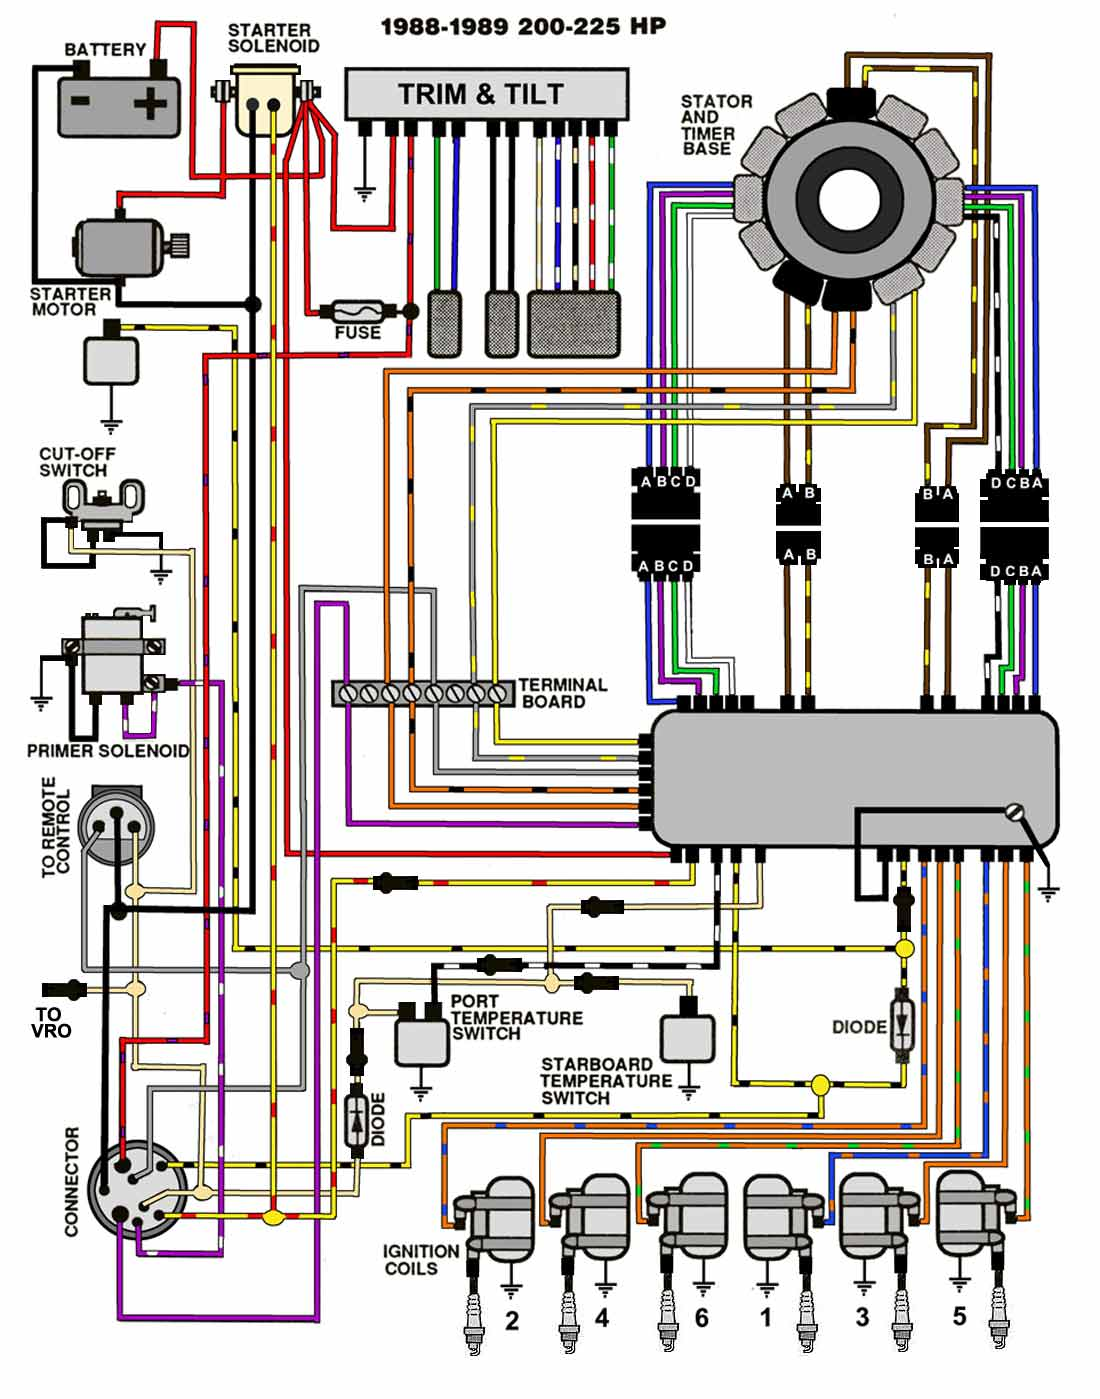 1988_89_200_225 mastertech marine evinrude johnson outboard wiring diagrams wiring diagram johnson 50 hp outboard at creativeand.co